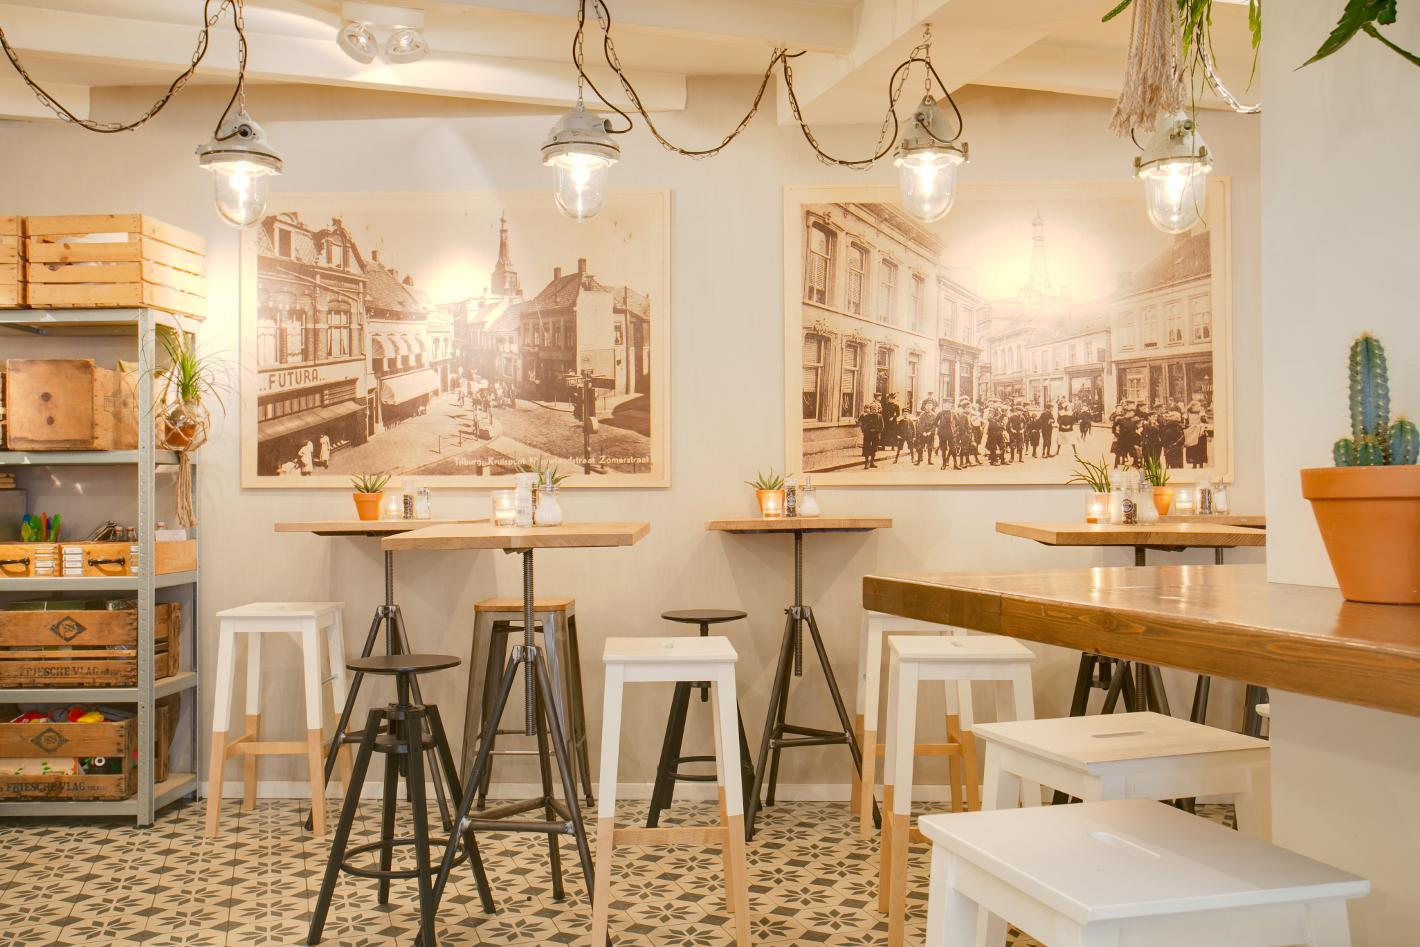 Photo Lunchcafé Nieuwland in Tilburg, Eat & drink, Coffee, tea & cakes, Lunch - #3